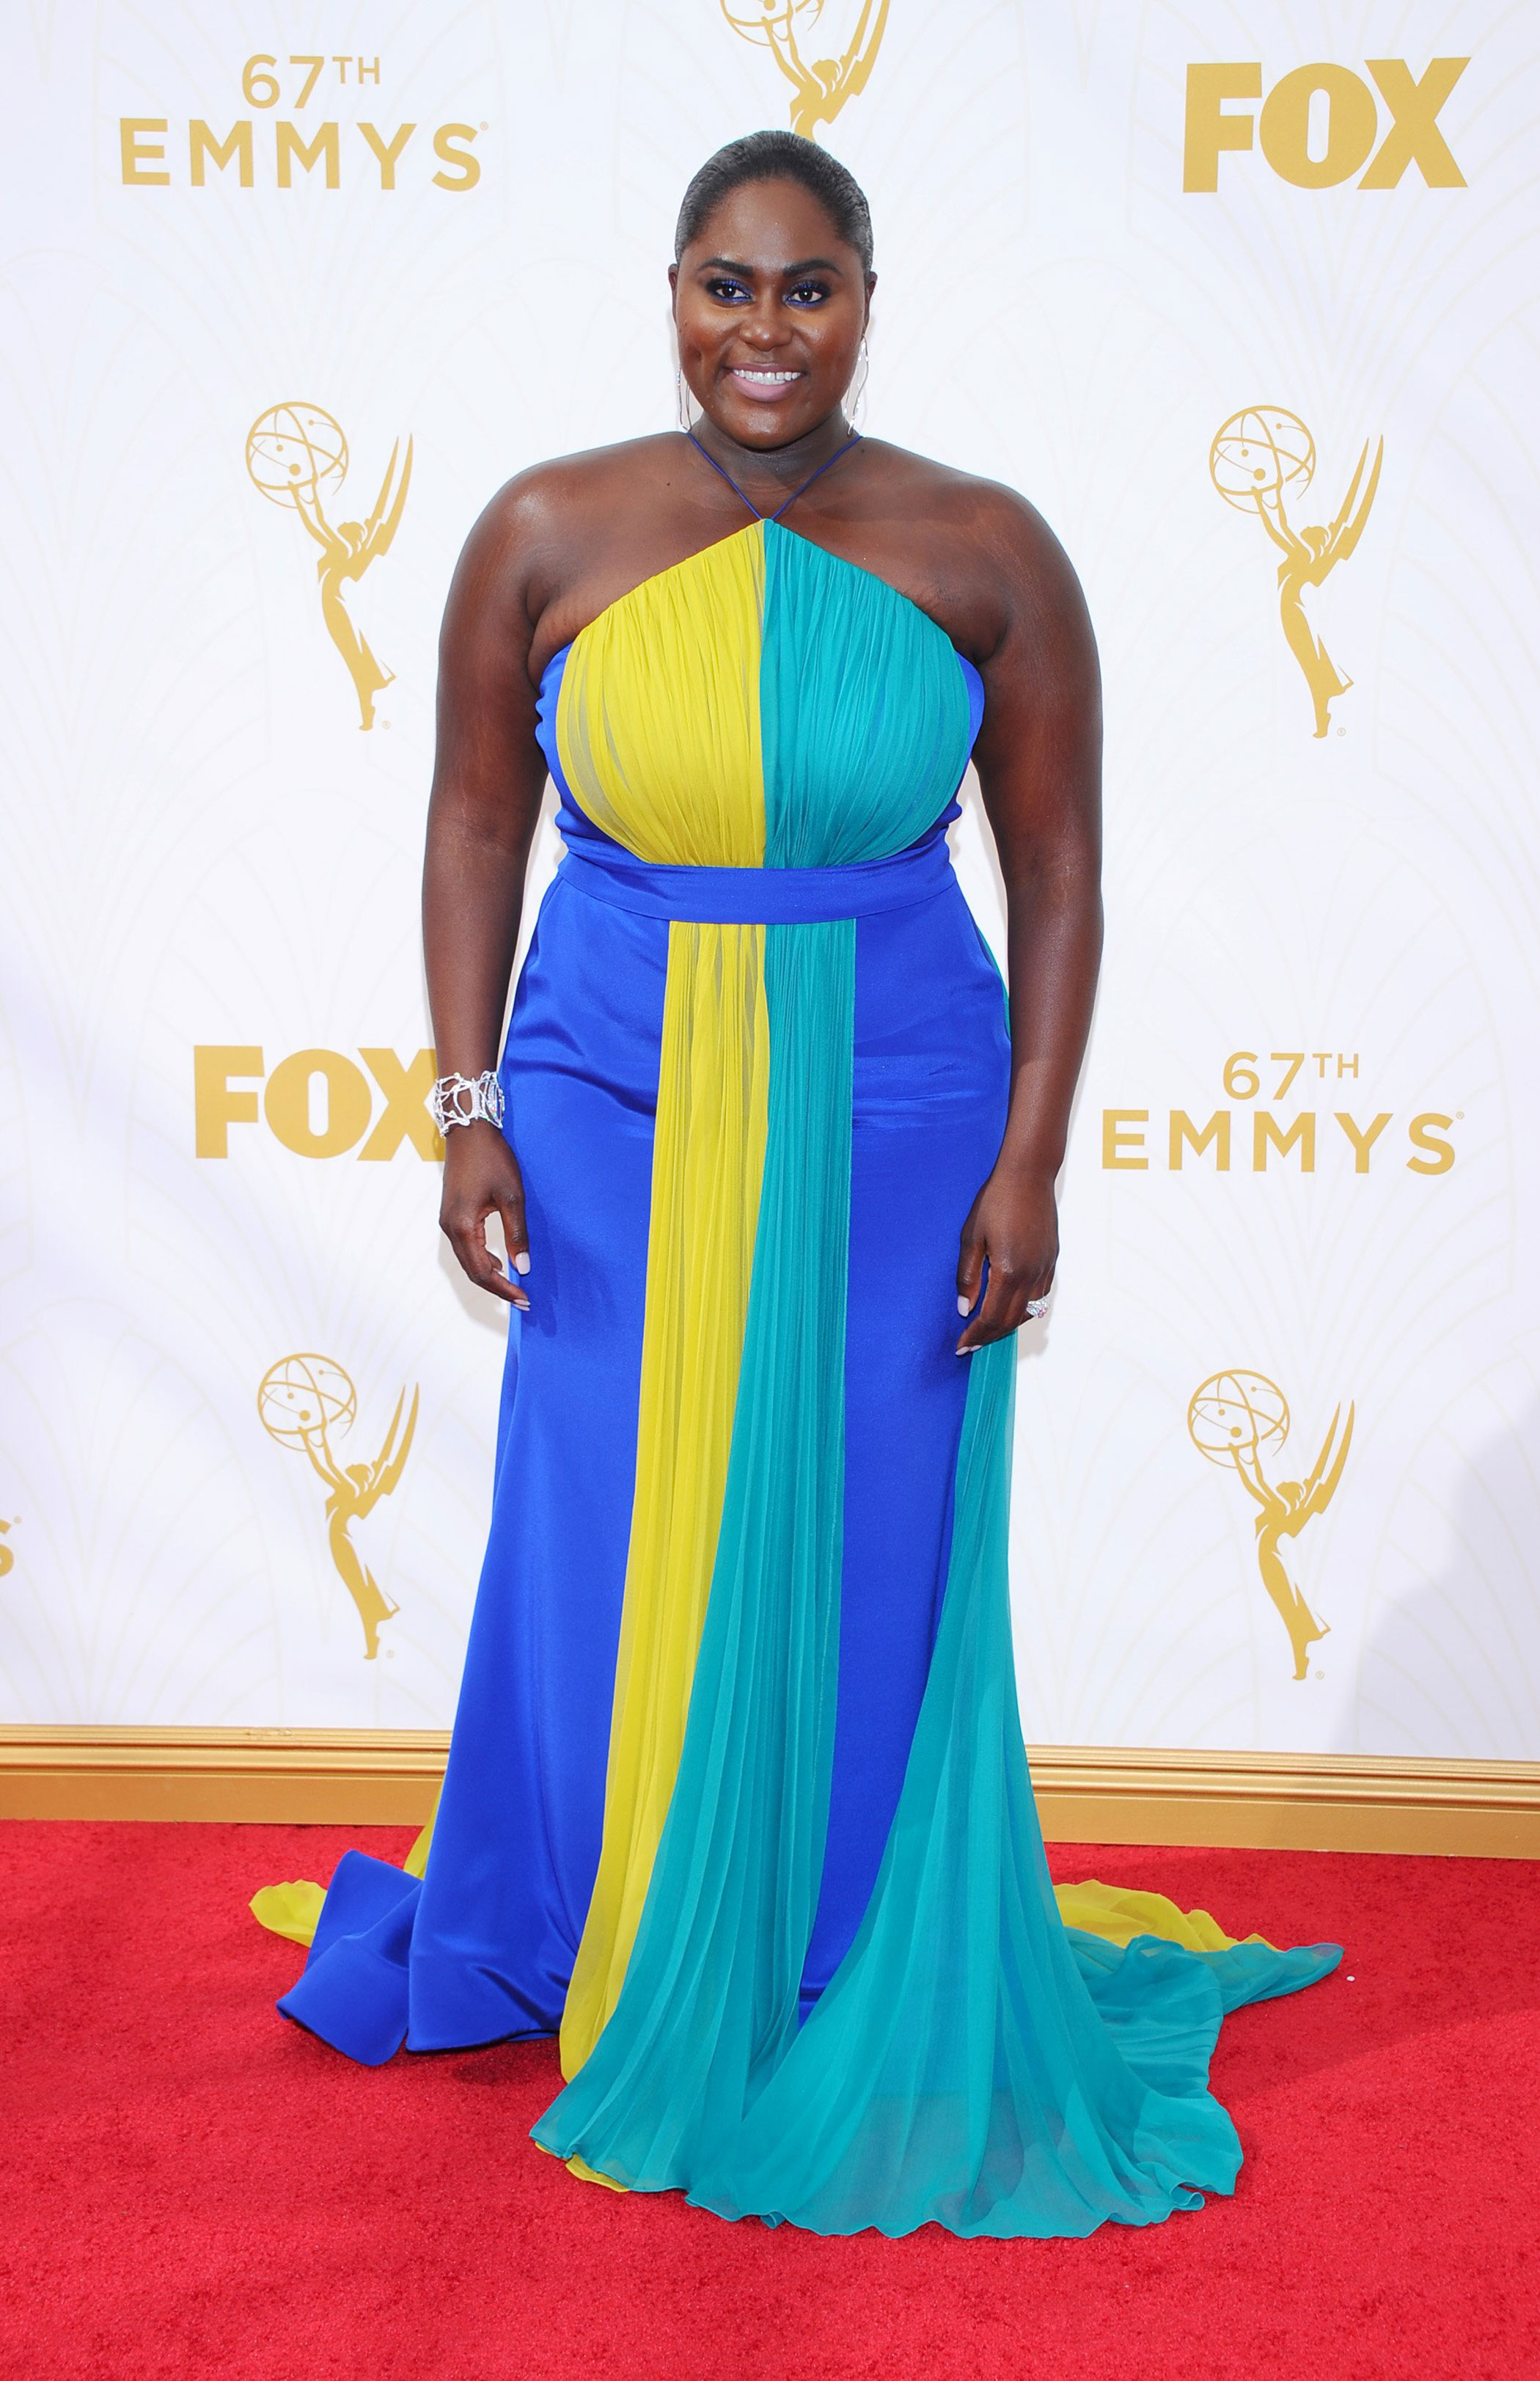 Danielle Brooks at the 67th Emmy Award on Sept. 20, 2015 in Los Angeles.